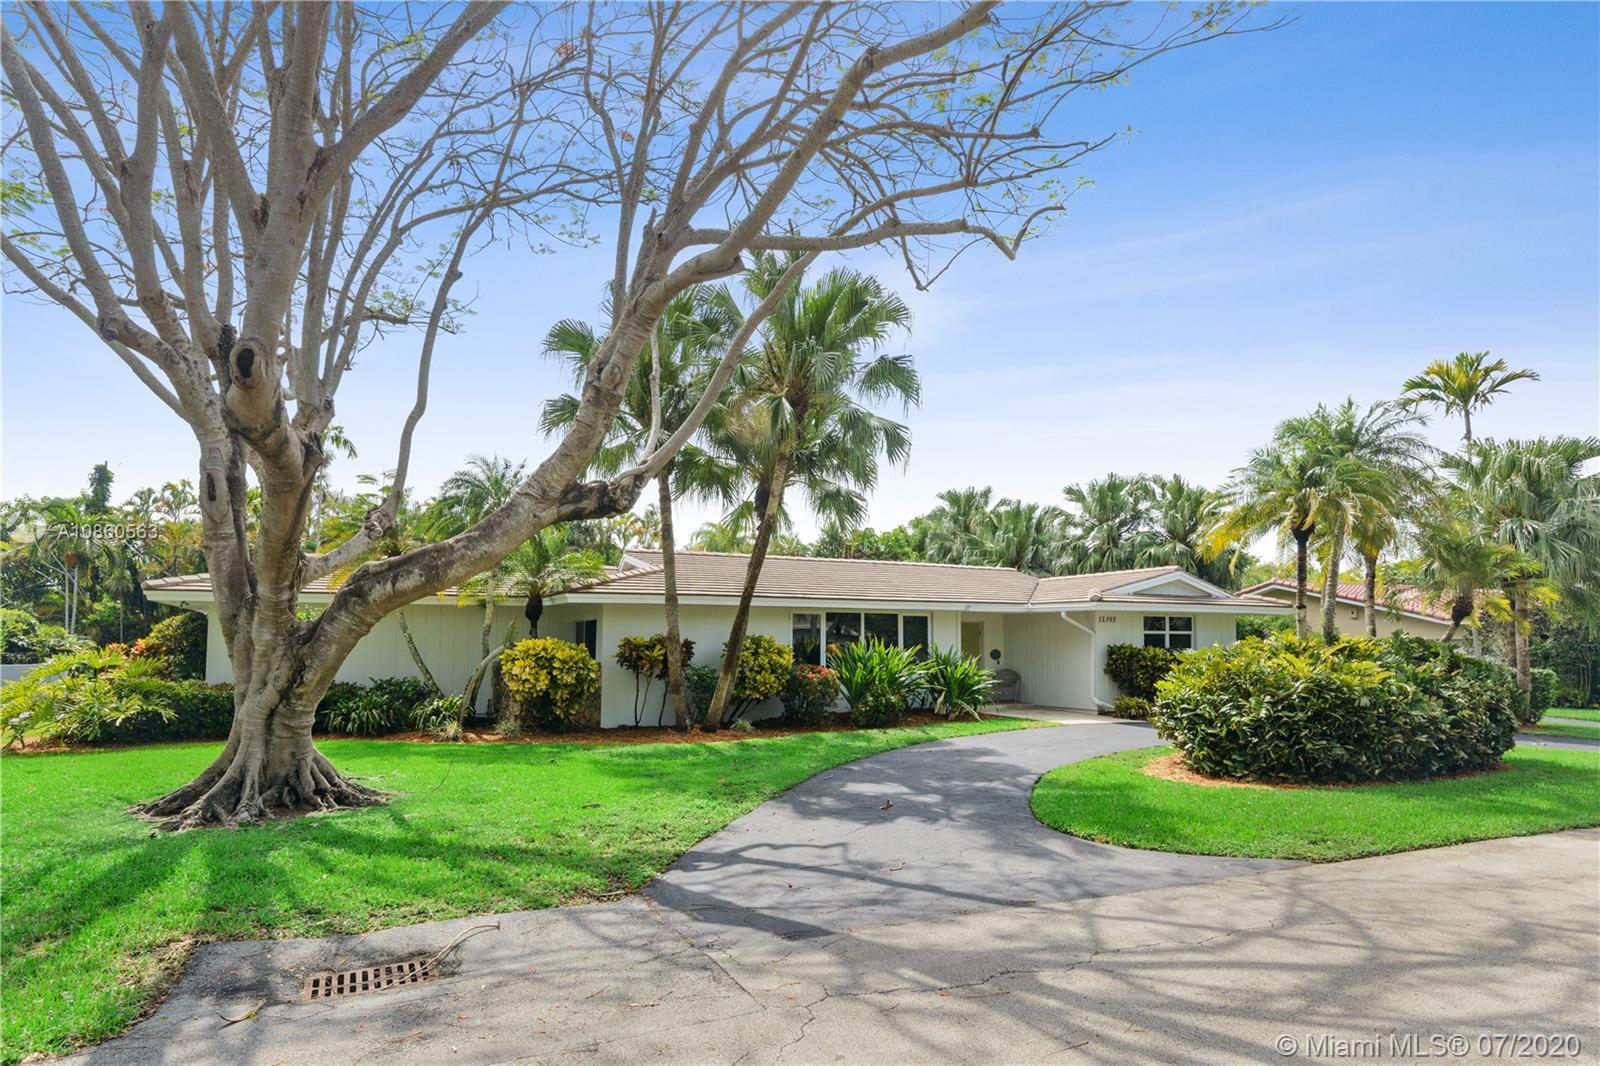 11355 SW 72nd Ct, Pinecrest, Florida 33156, 4 Bedrooms Bedrooms, ,3 BathroomsBathrooms,Residential,For Sale,11355 SW 72nd Ct,A10860563